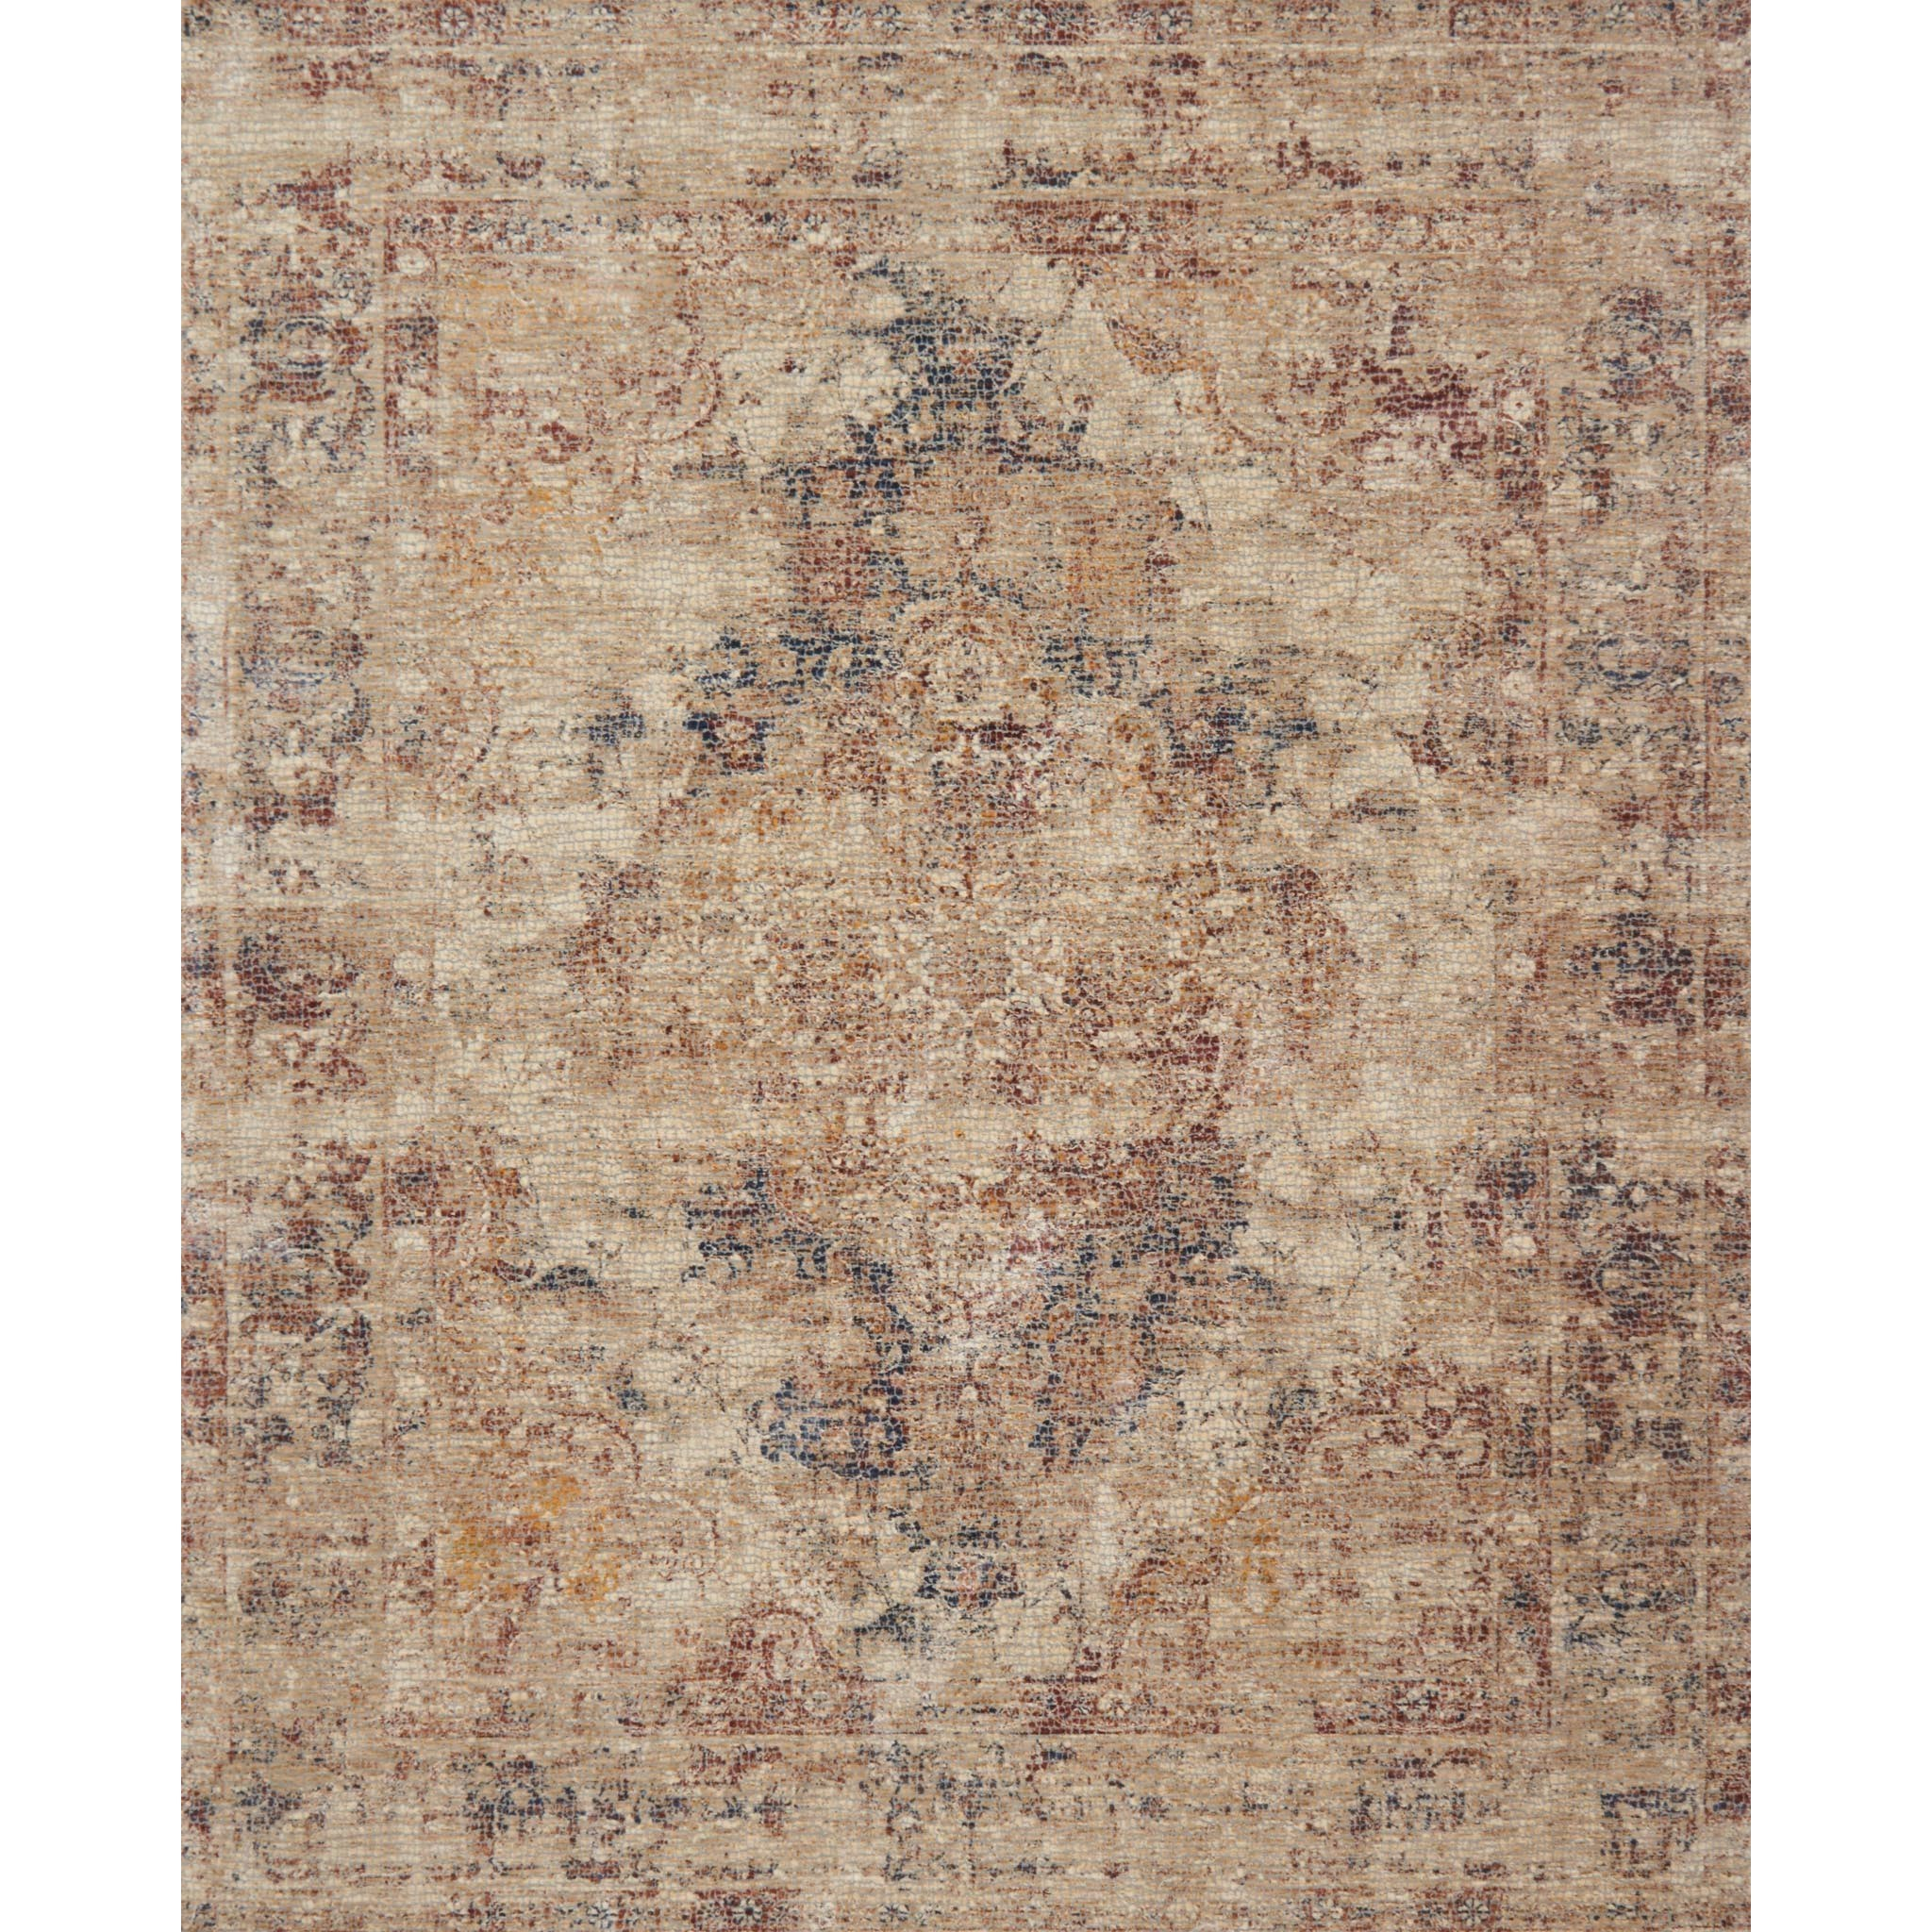 """Porcia 2'-8"""" X 8' Runner by Loloi Rugs at Virginia Furniture Market"""